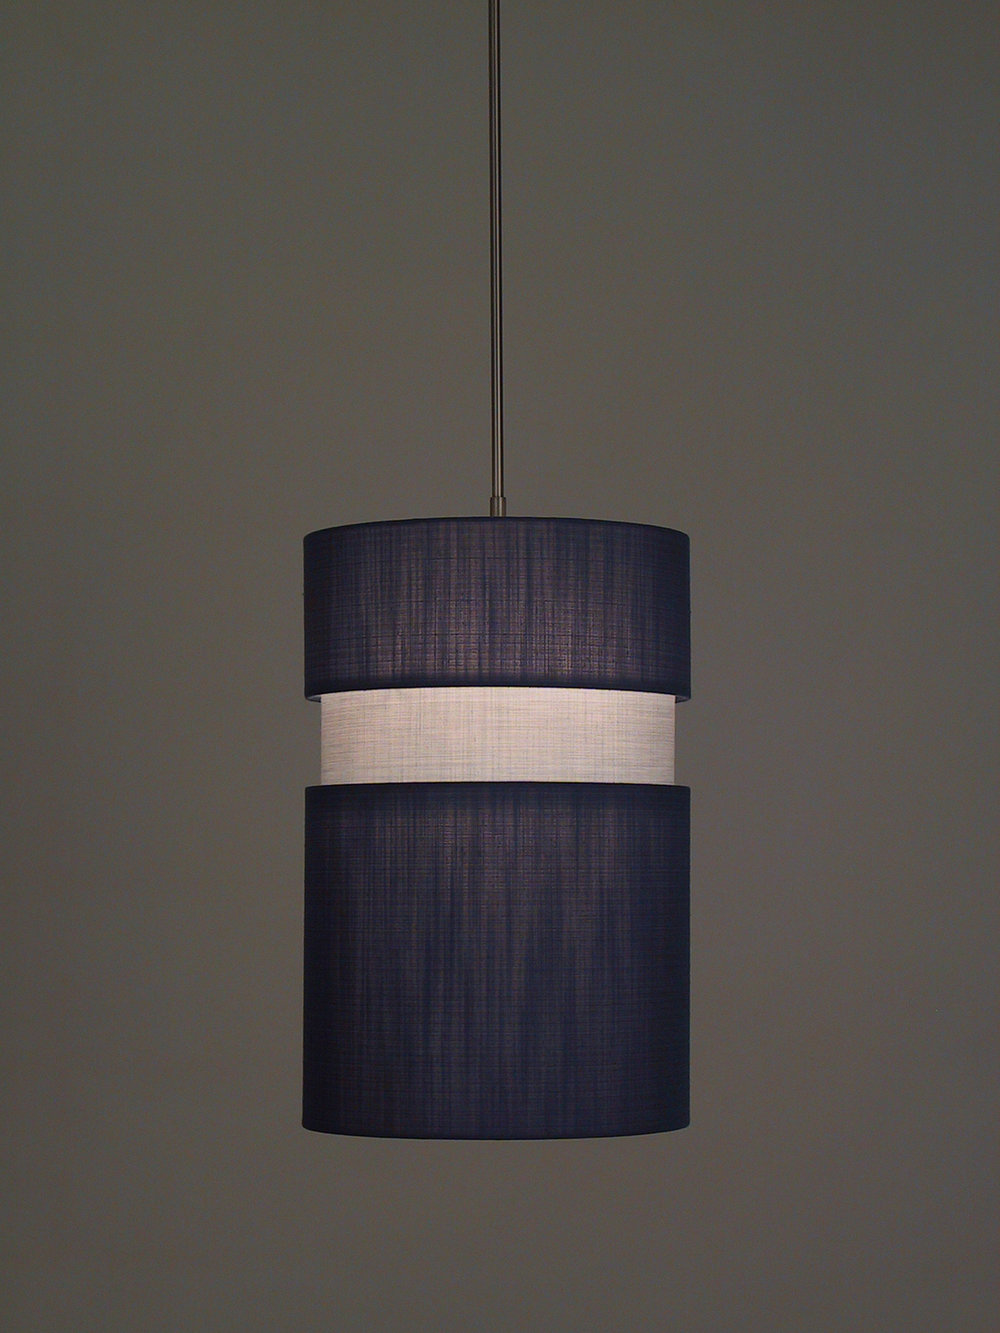 Layers_C-154_Layers Cylinder Pendant_Satin Nickel_Blue and White Porto_1.JPG